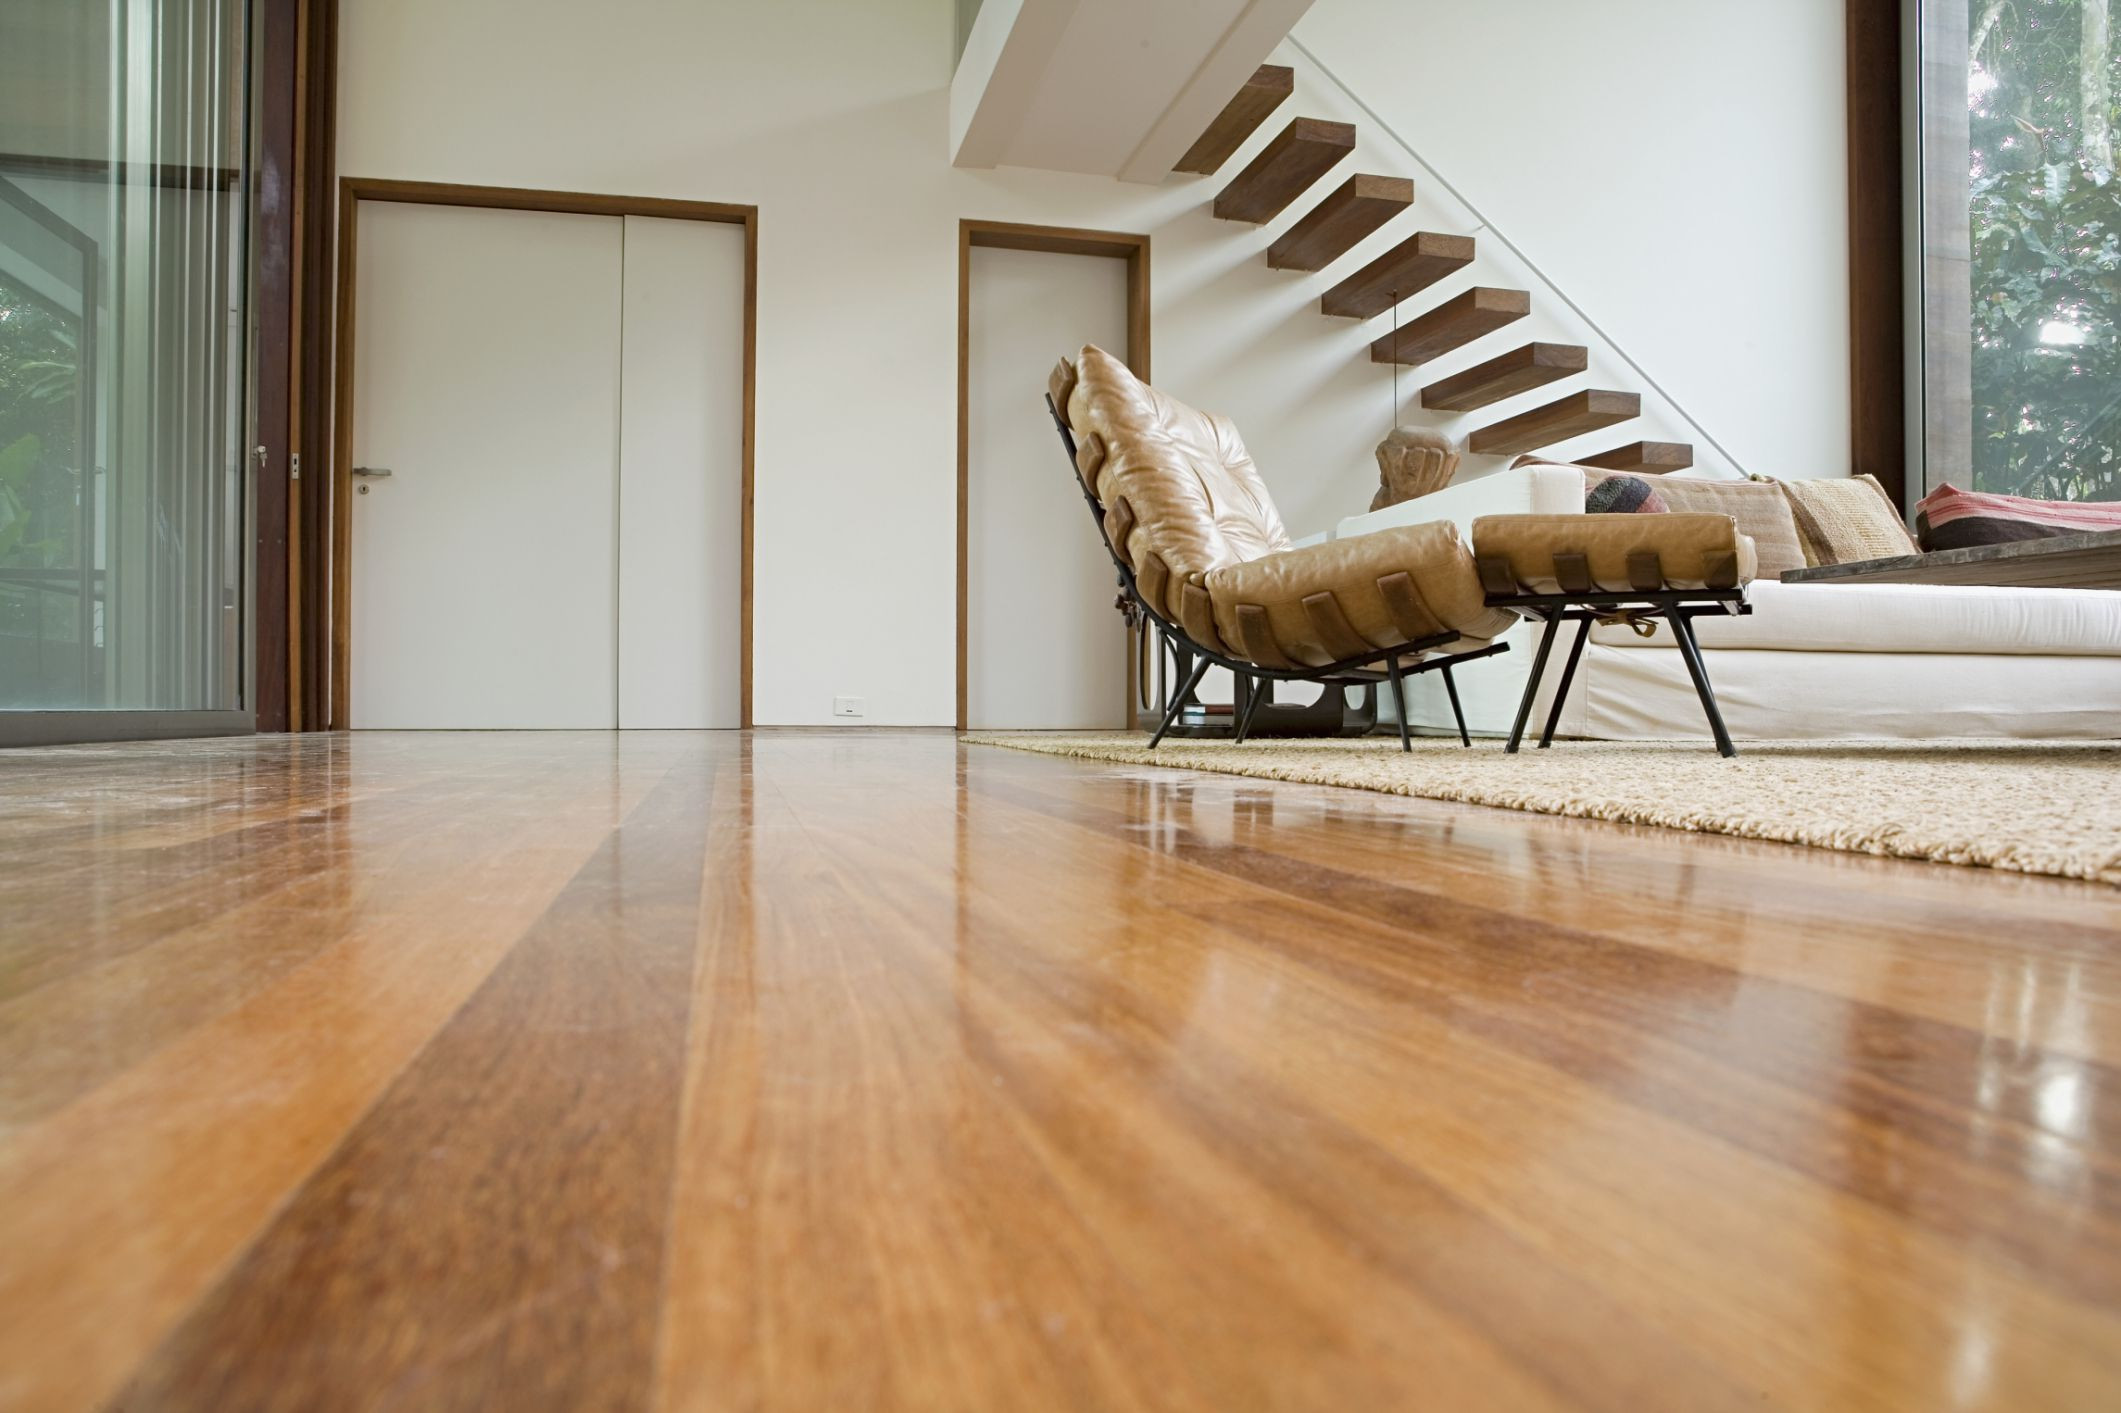 Benefits Of Hardwood Flooring Vs Laminate Of Engineered Wood Flooring Vs solid Wood Flooring within 200571260 001 Highres 56a49dec5f9b58b7d0d7dc1e